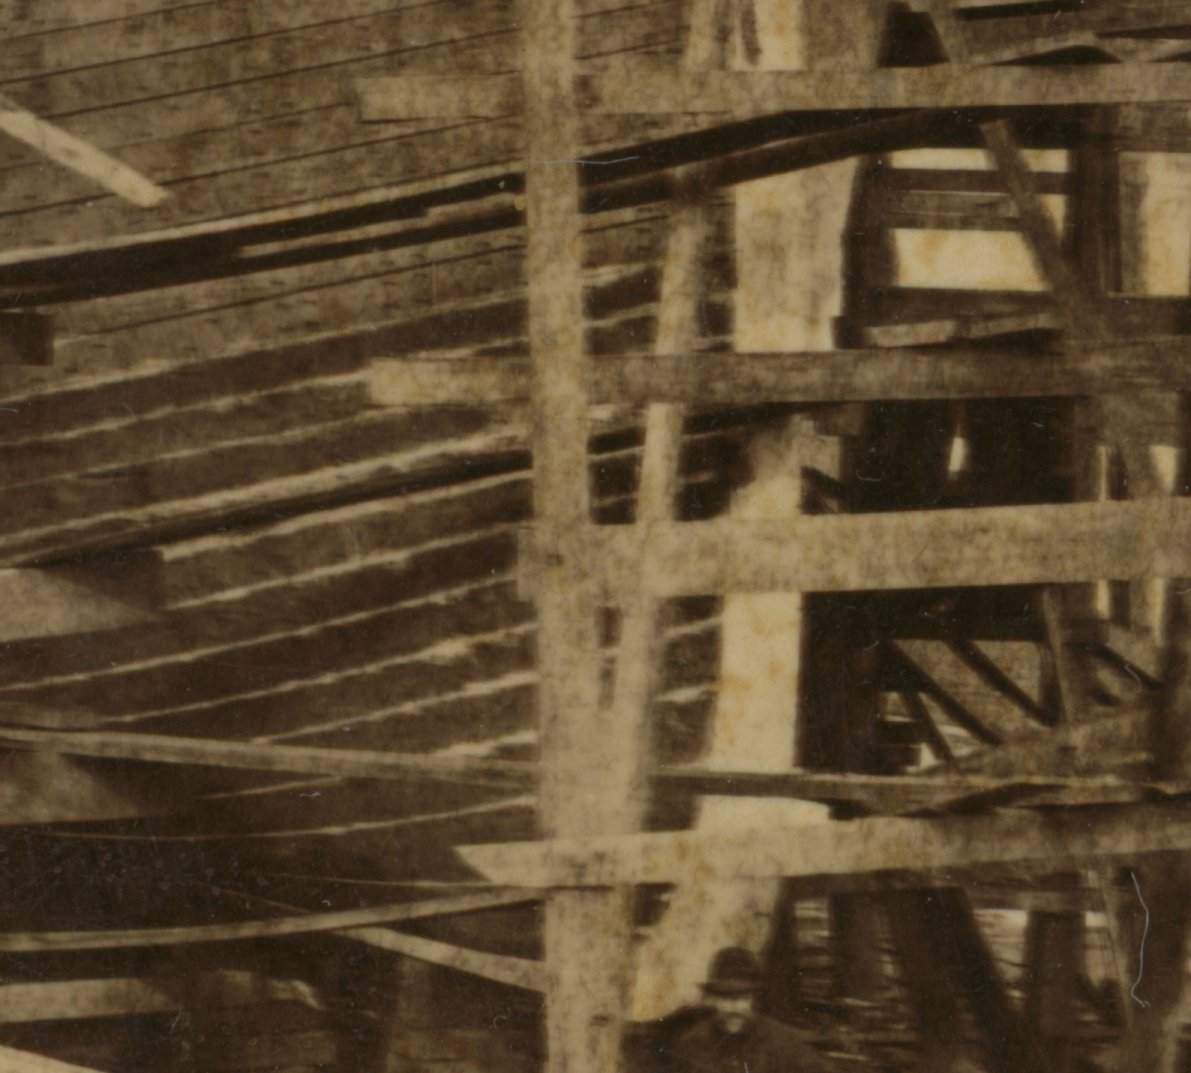 Steamboat construction at Cleveland